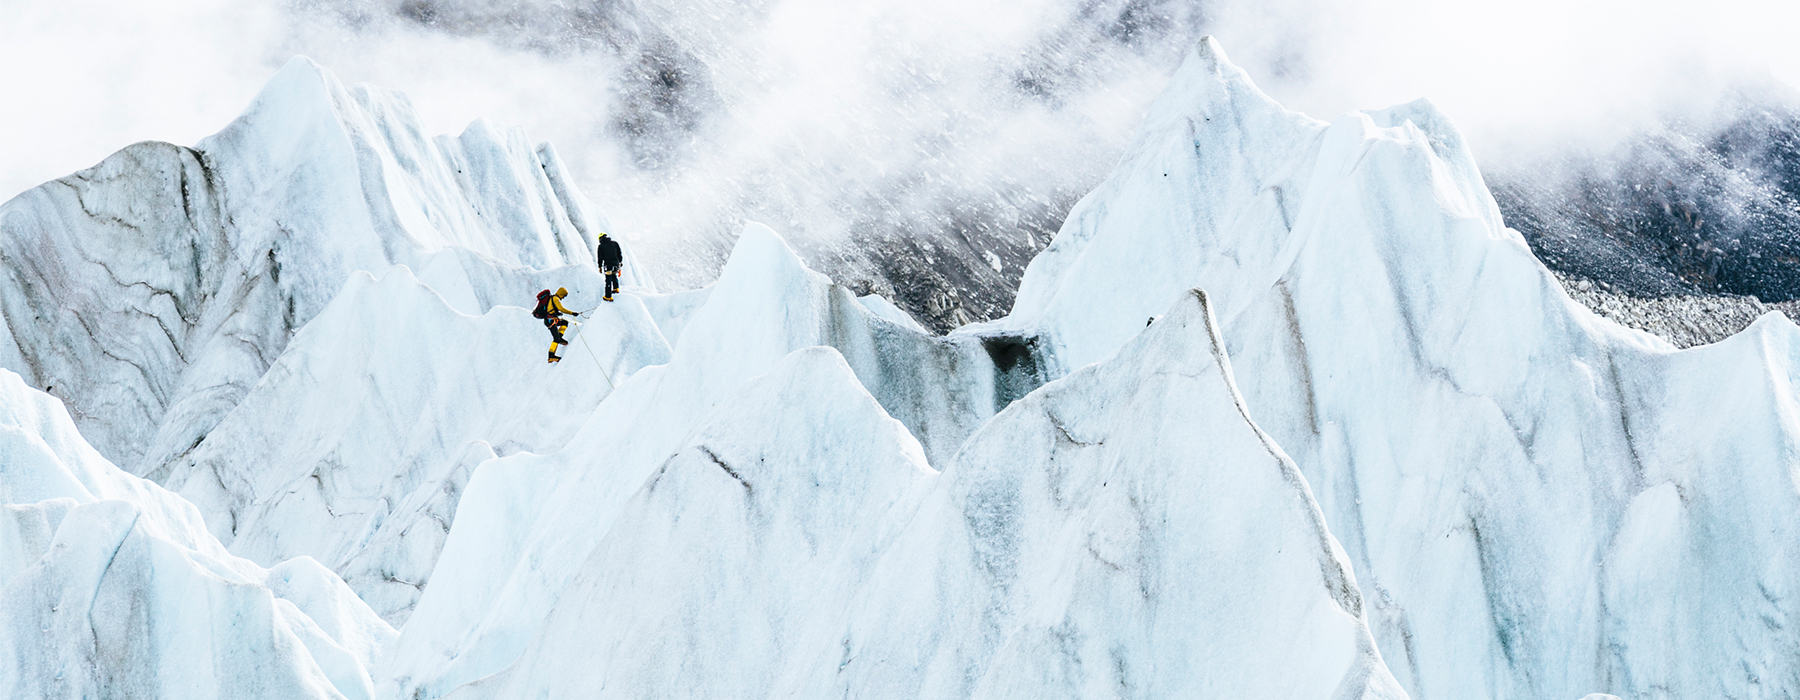 Image of Garrett Madison and Tim Emmett product testing future Absolute Zero Suits in the glacier fall near Everest Base Camp.